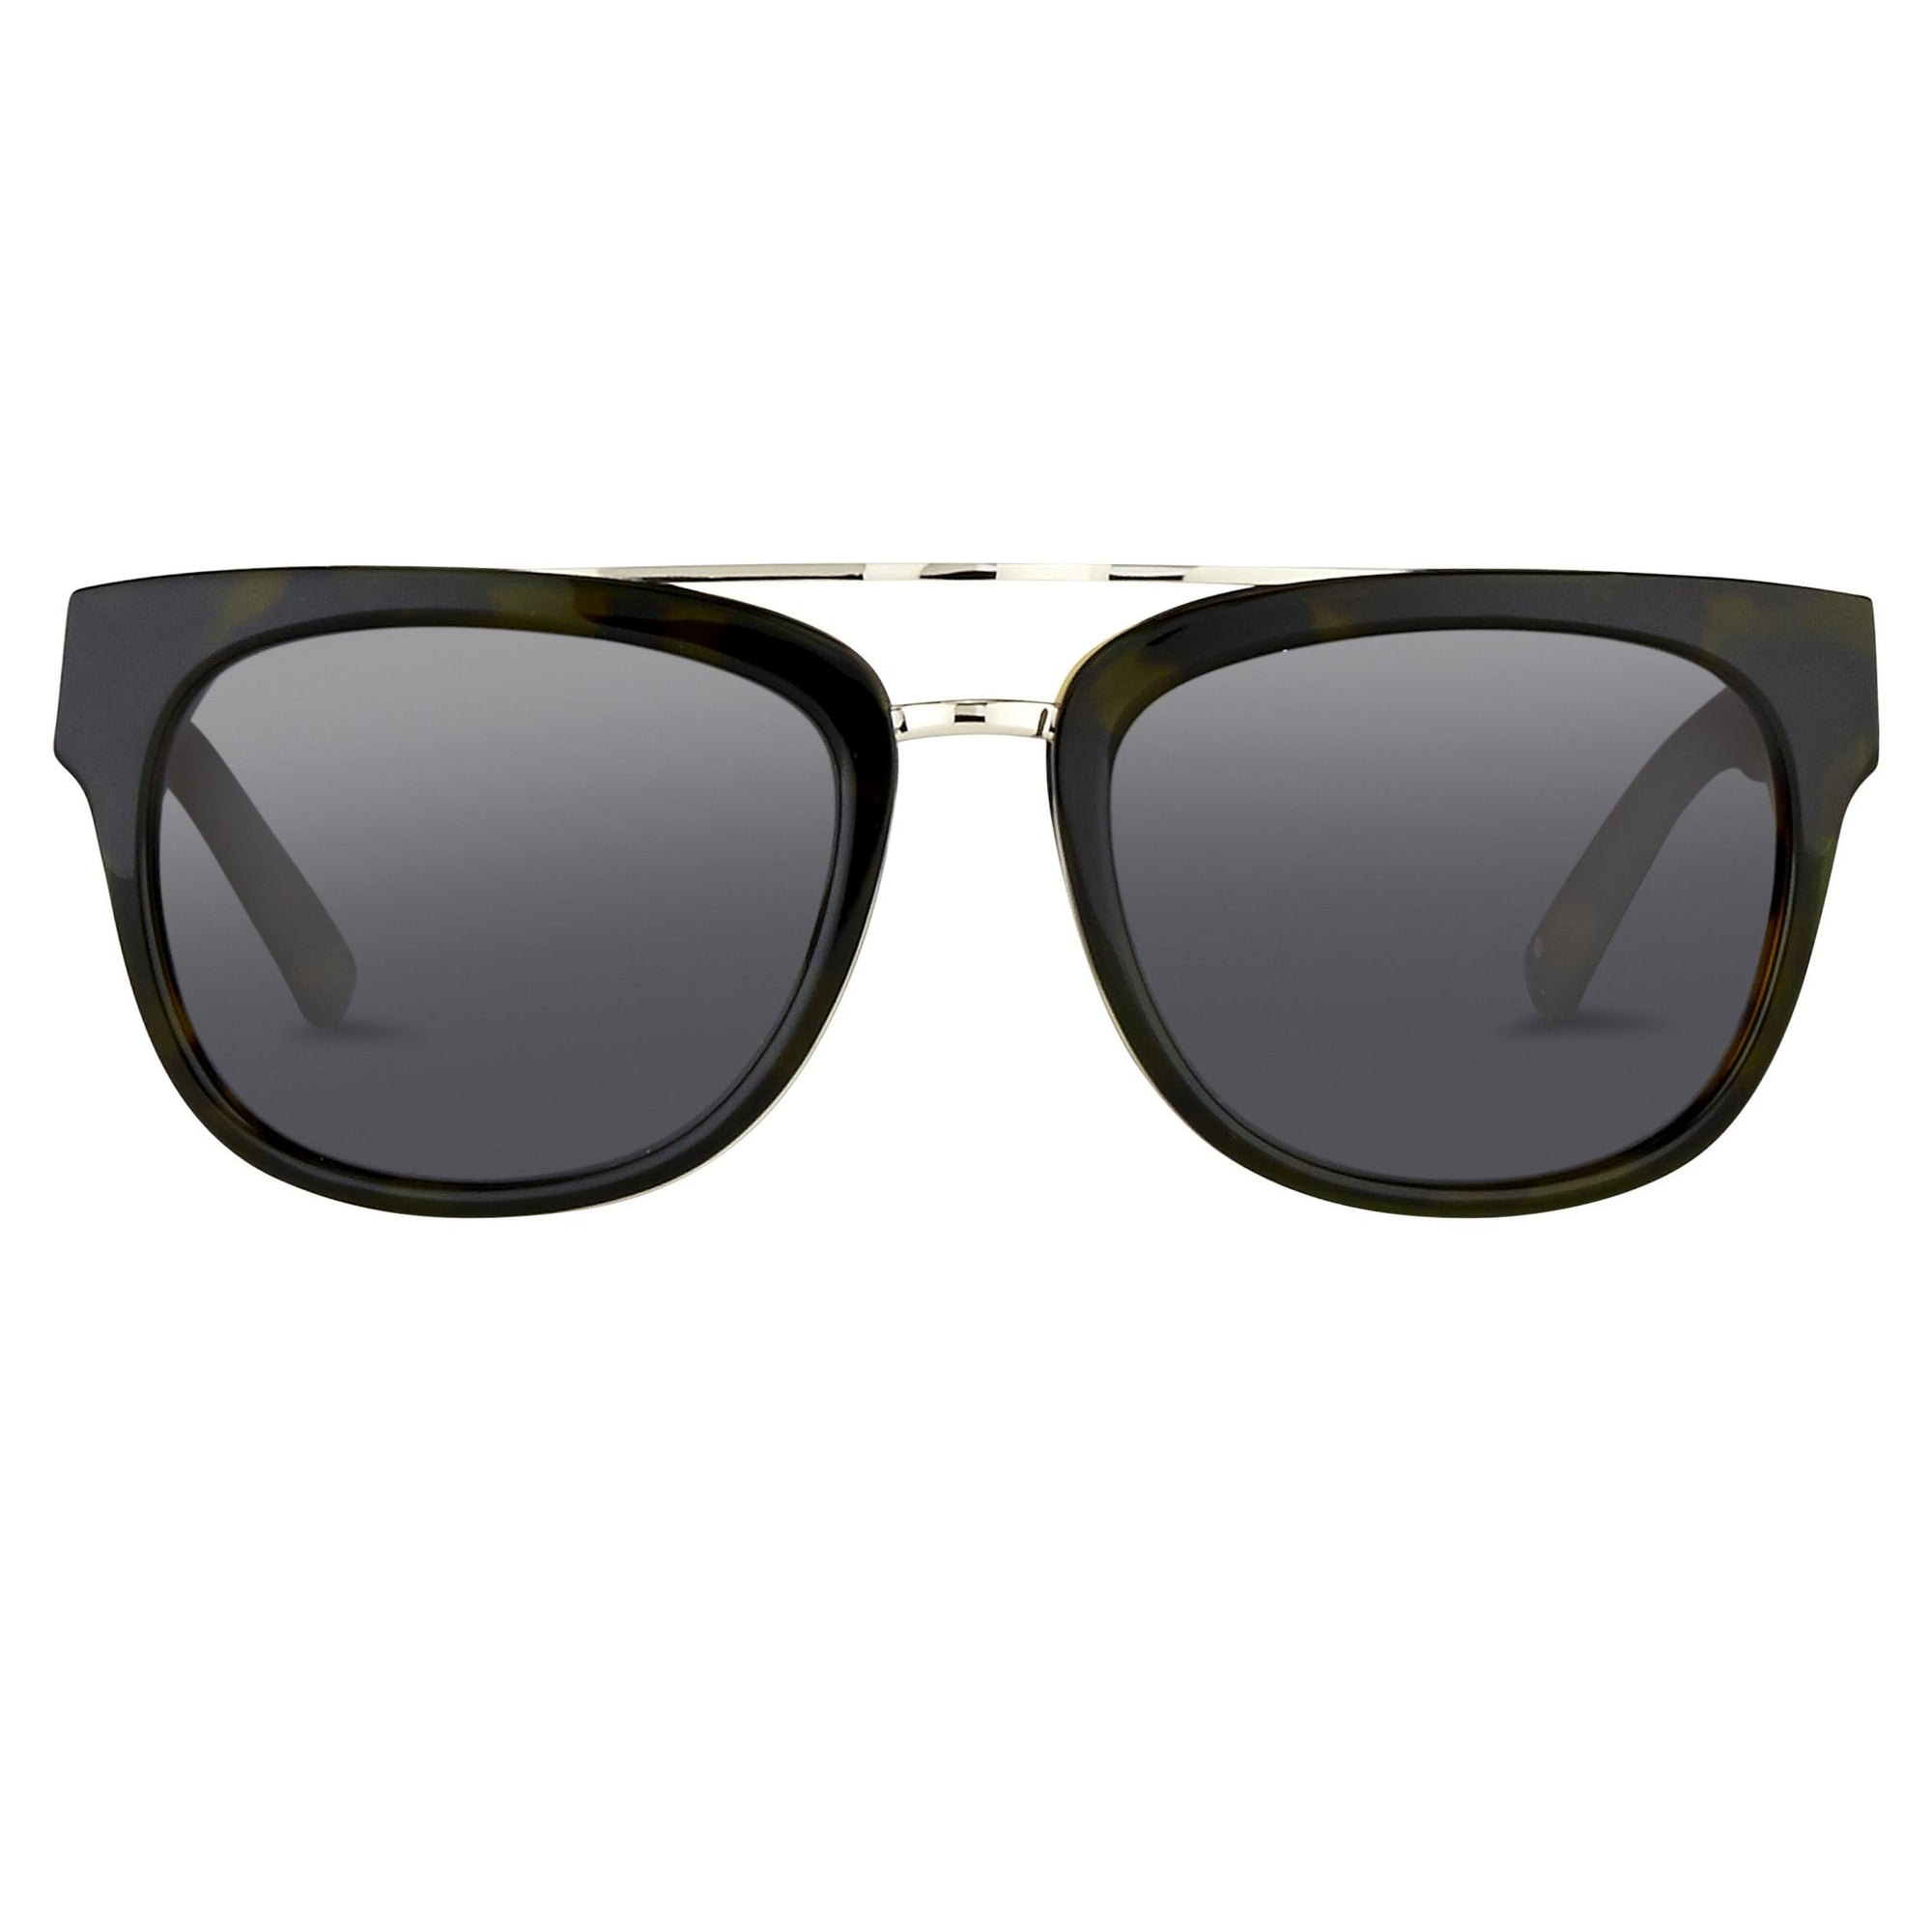 Phillip Lim Sunglasses with Rectangular Tortoiseshell Silver and Fog Green Lenses Category 3 - PL144C6SUN - Watches & Crystals